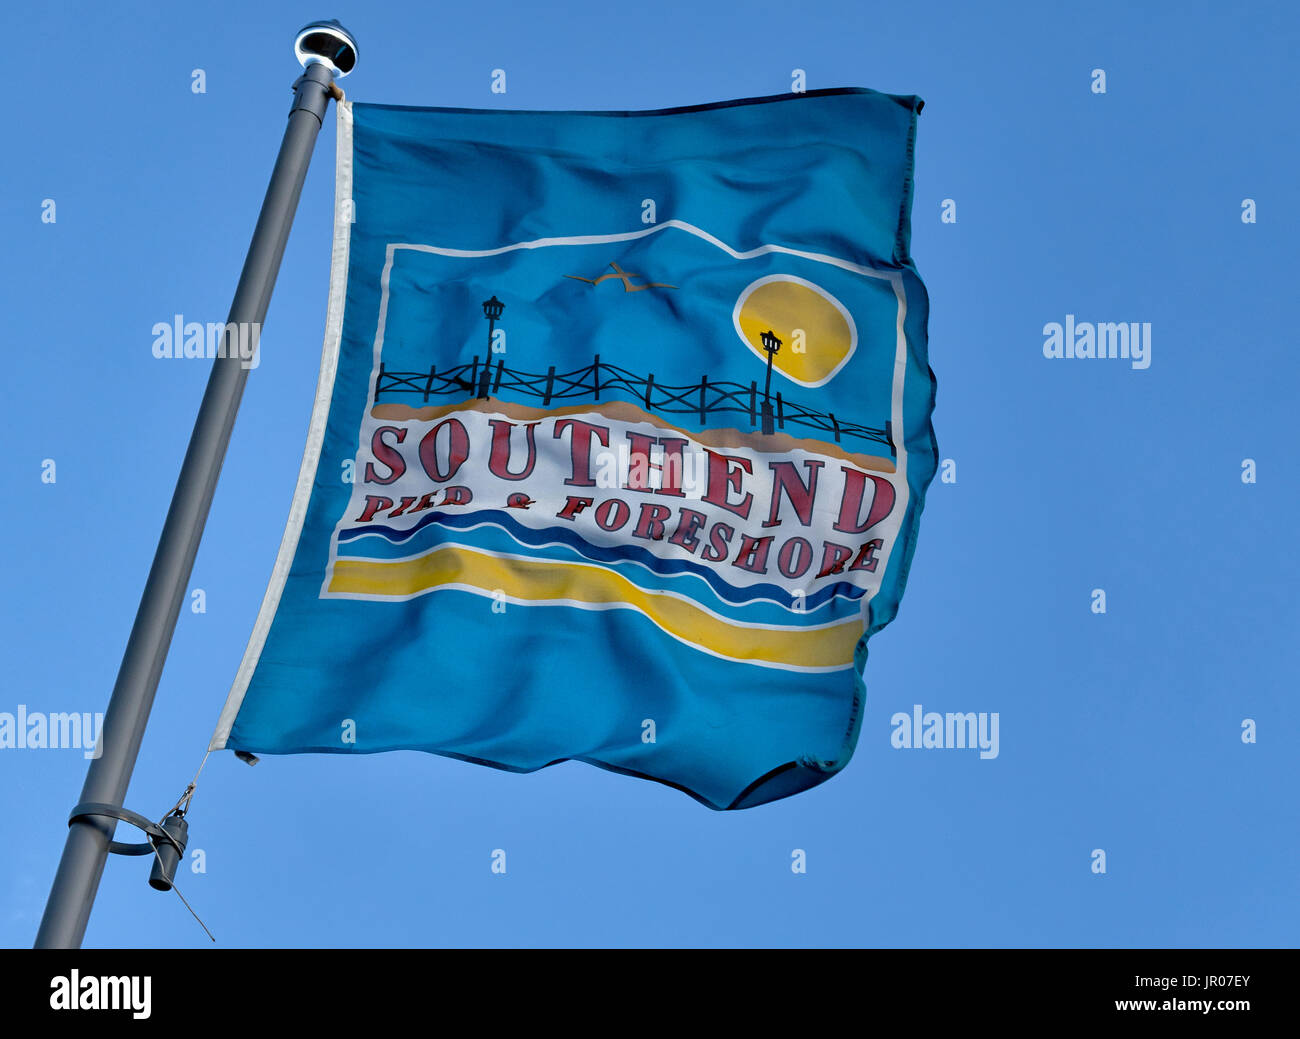 SOUTHEND-ON-SEA, ESSEX, UK:  Flag banner advertising Southend Pier and Foreshore blowing in the wind - Stock Image